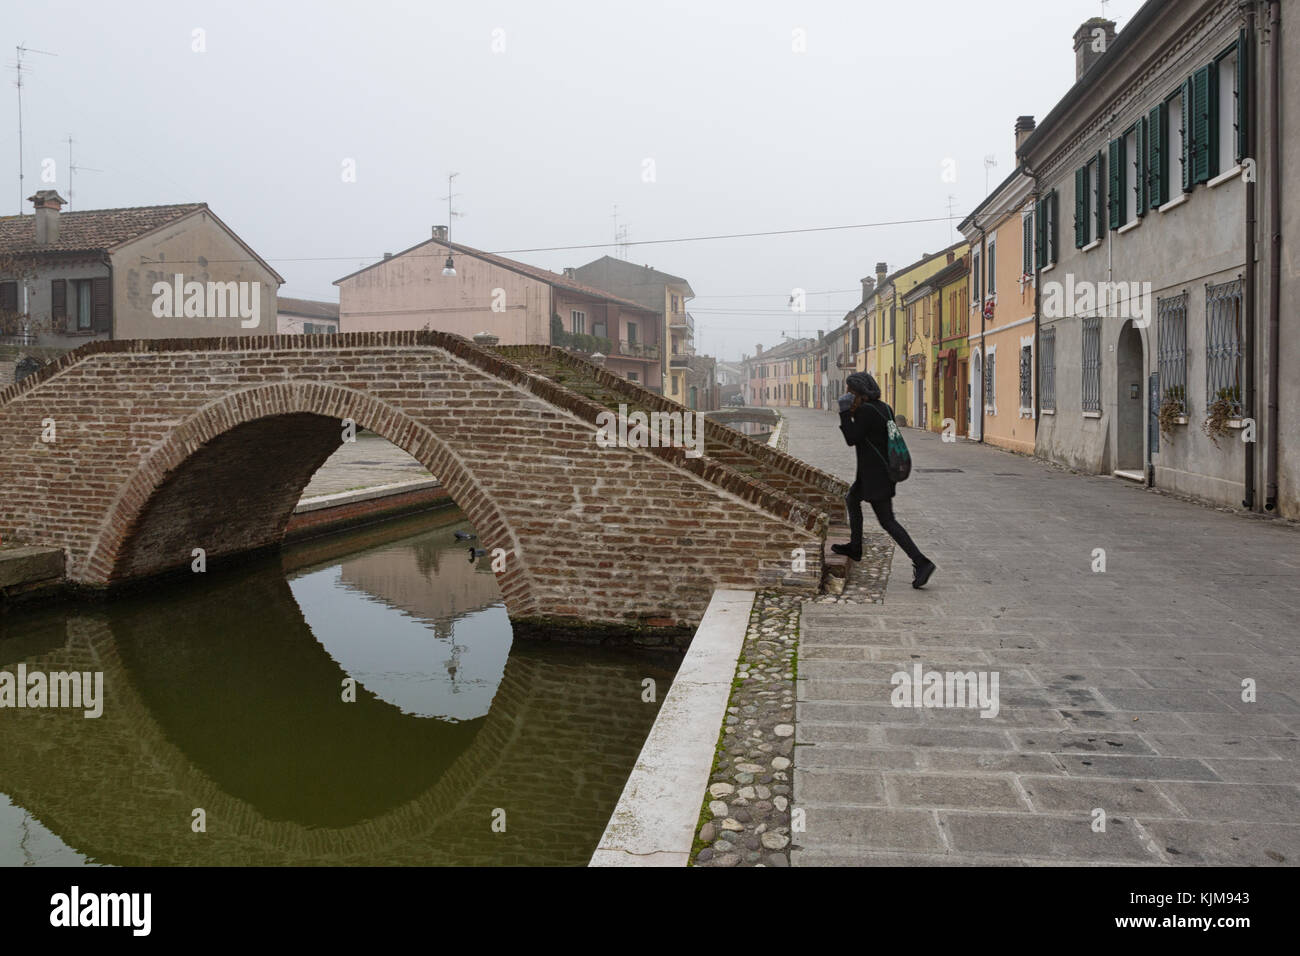 Comacchio (Italy) - Characteristic and fascinating historic town in the Park of the Po Delta, with its canals and - Stock Image